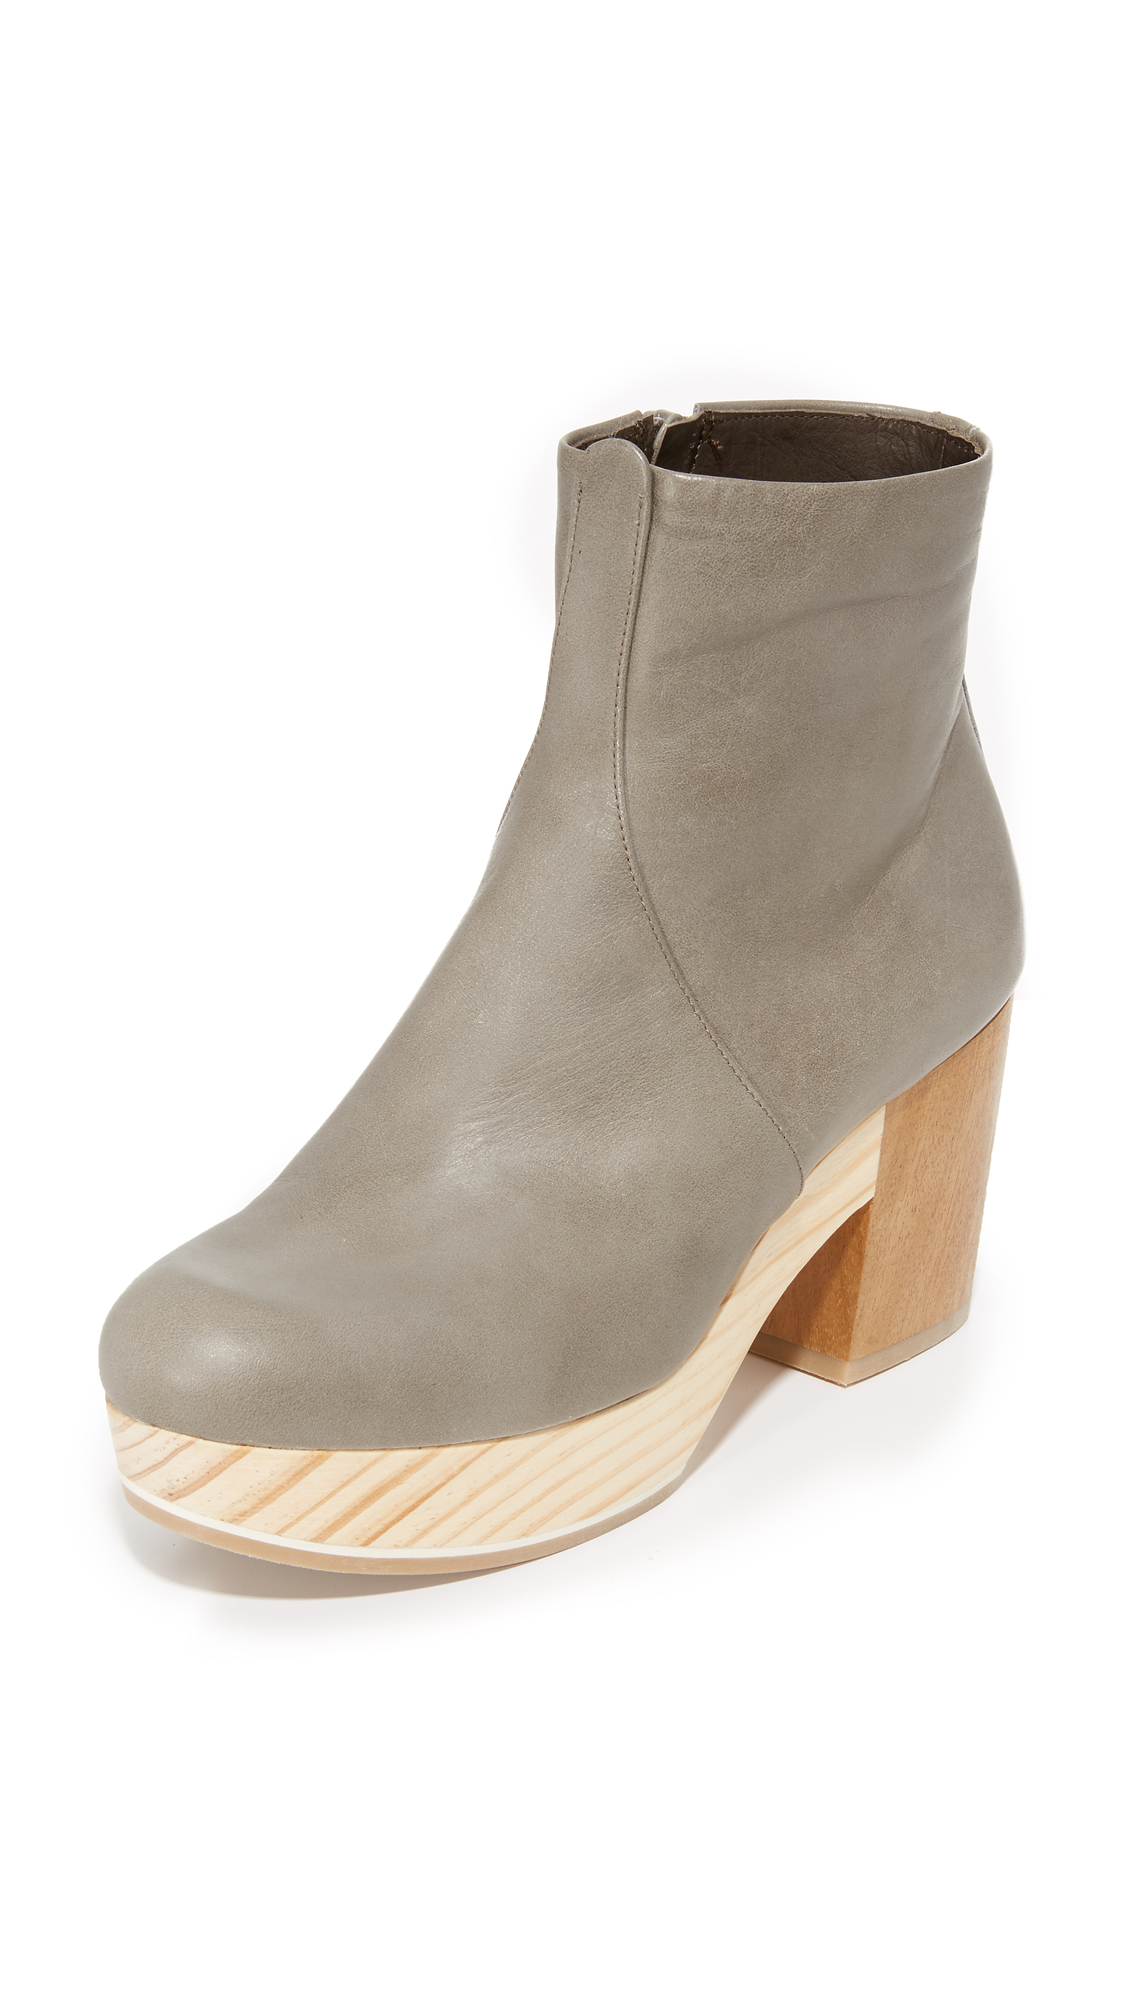 Coclico Shoes Tickle Clog Booties - Vitello Grey